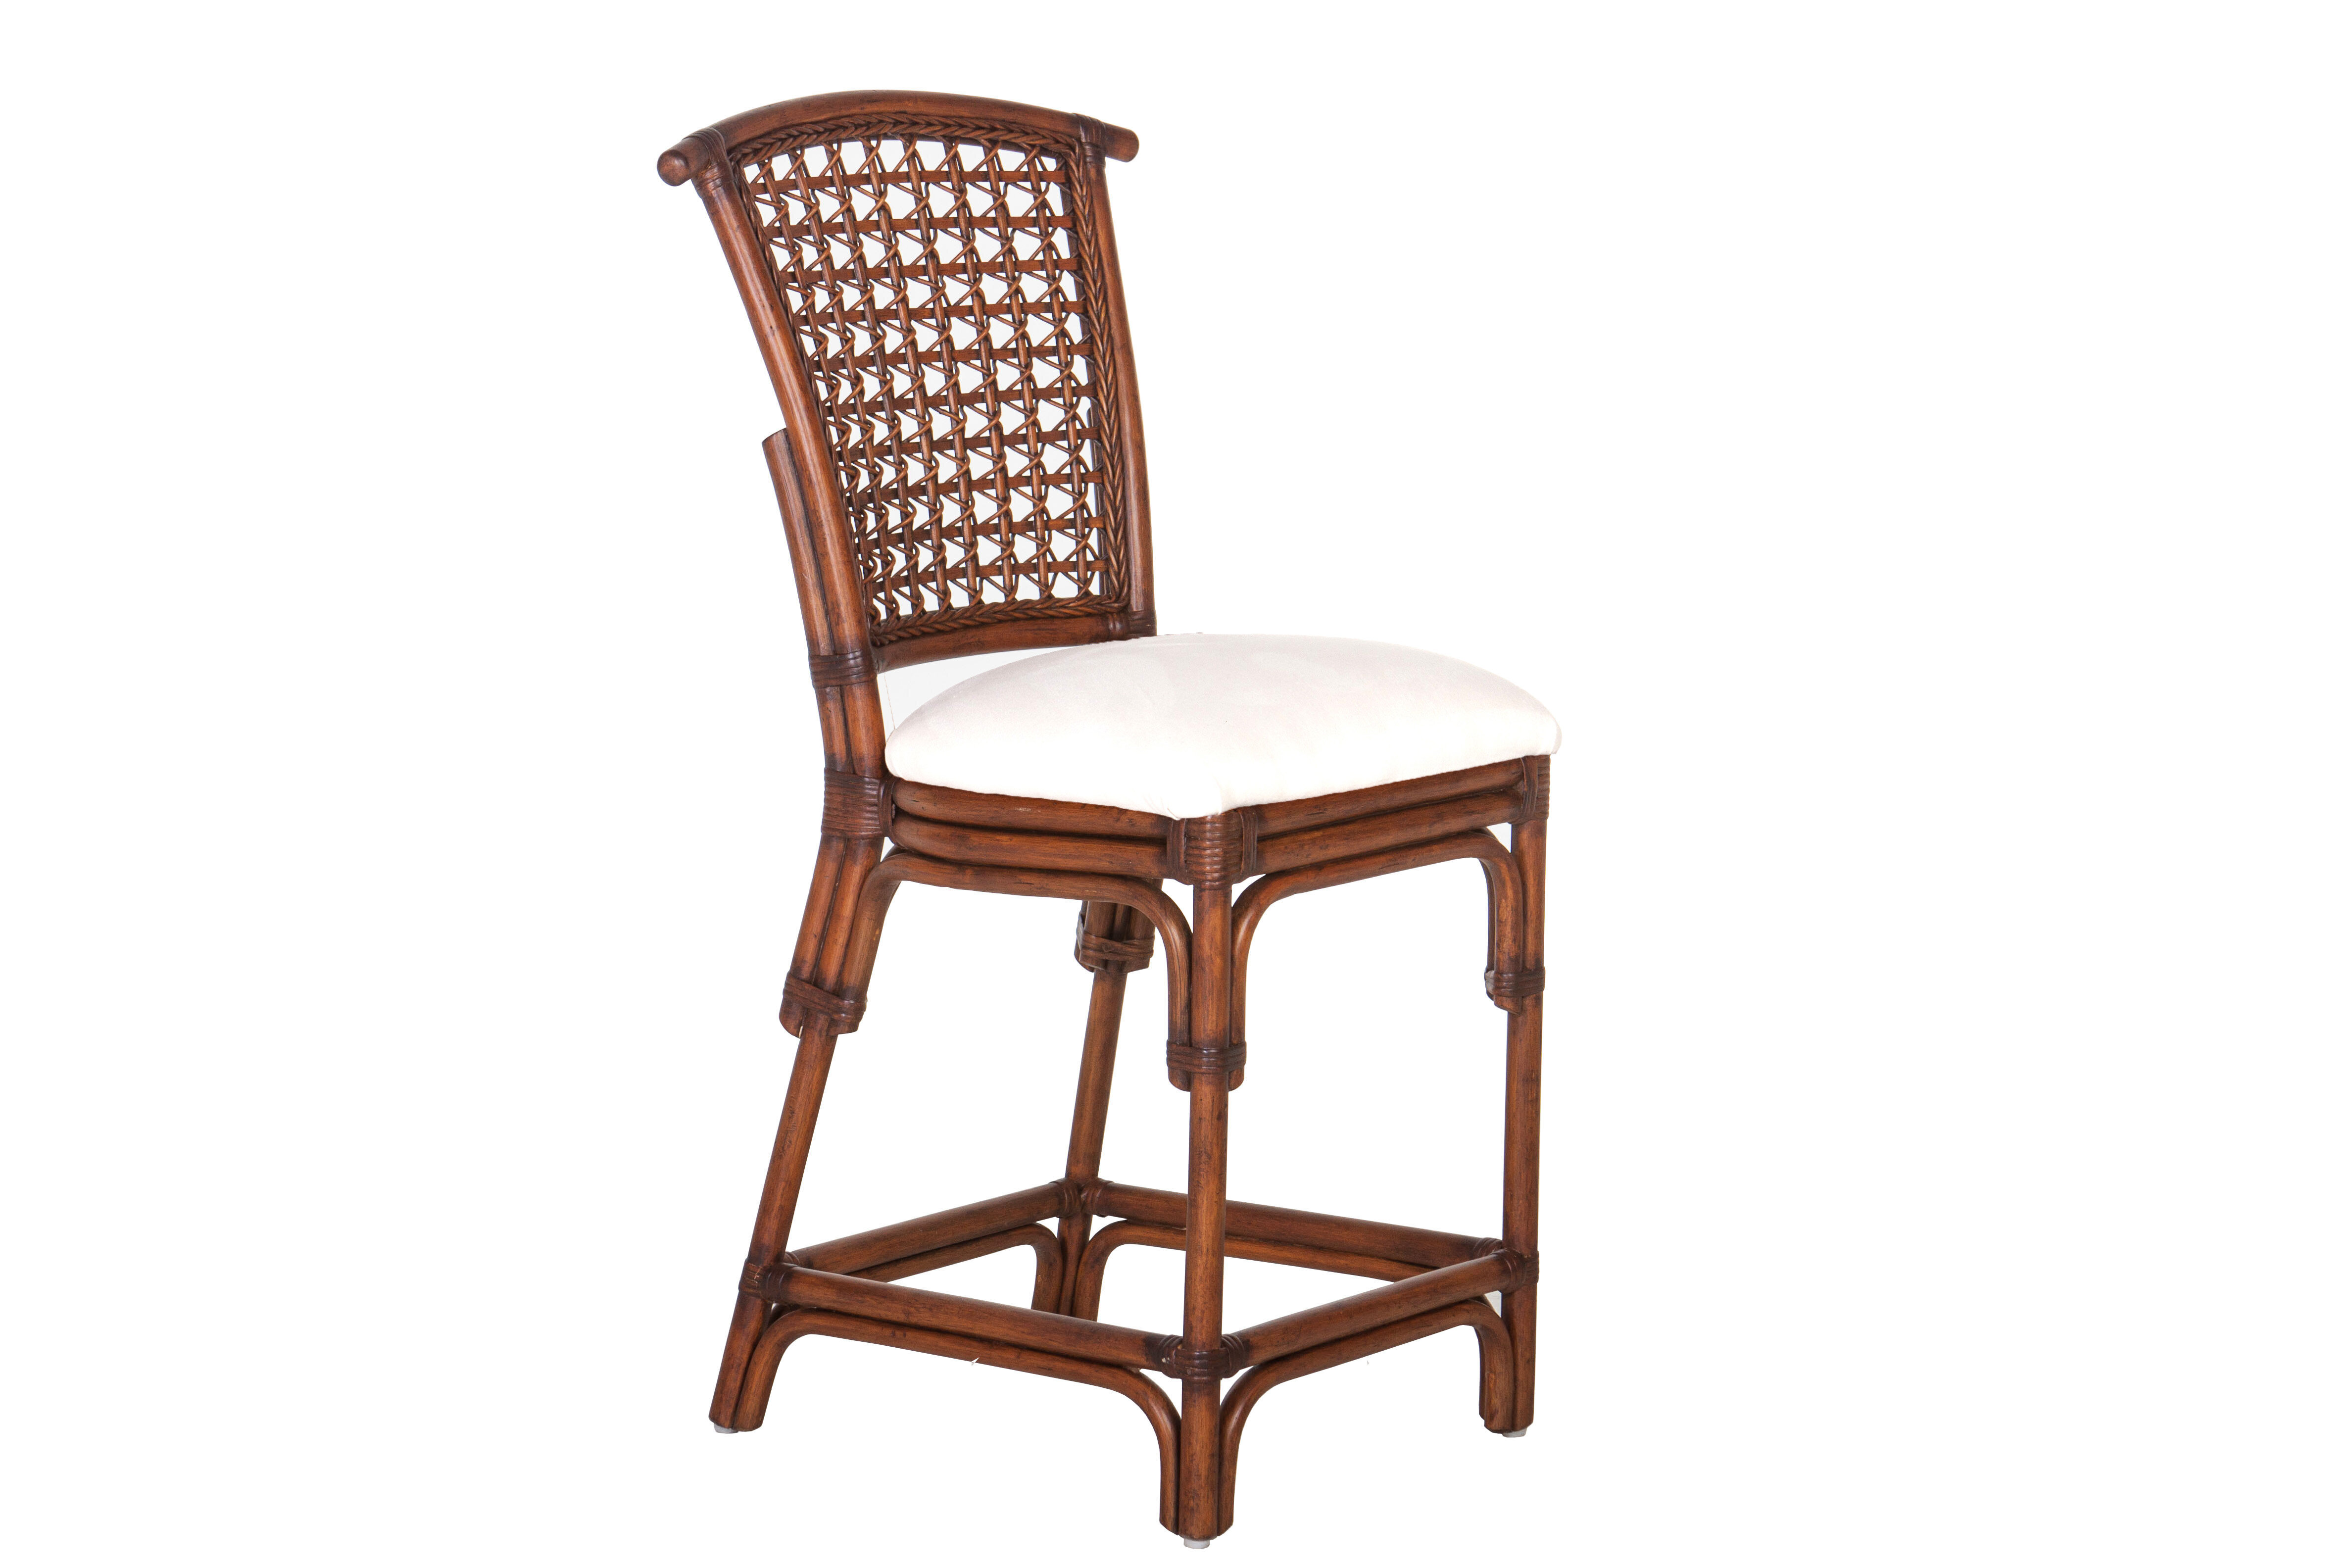 Swell Fiji Gathering 24 Bar Stool Gmtry Best Dining Table And Chair Ideas Images Gmtryco